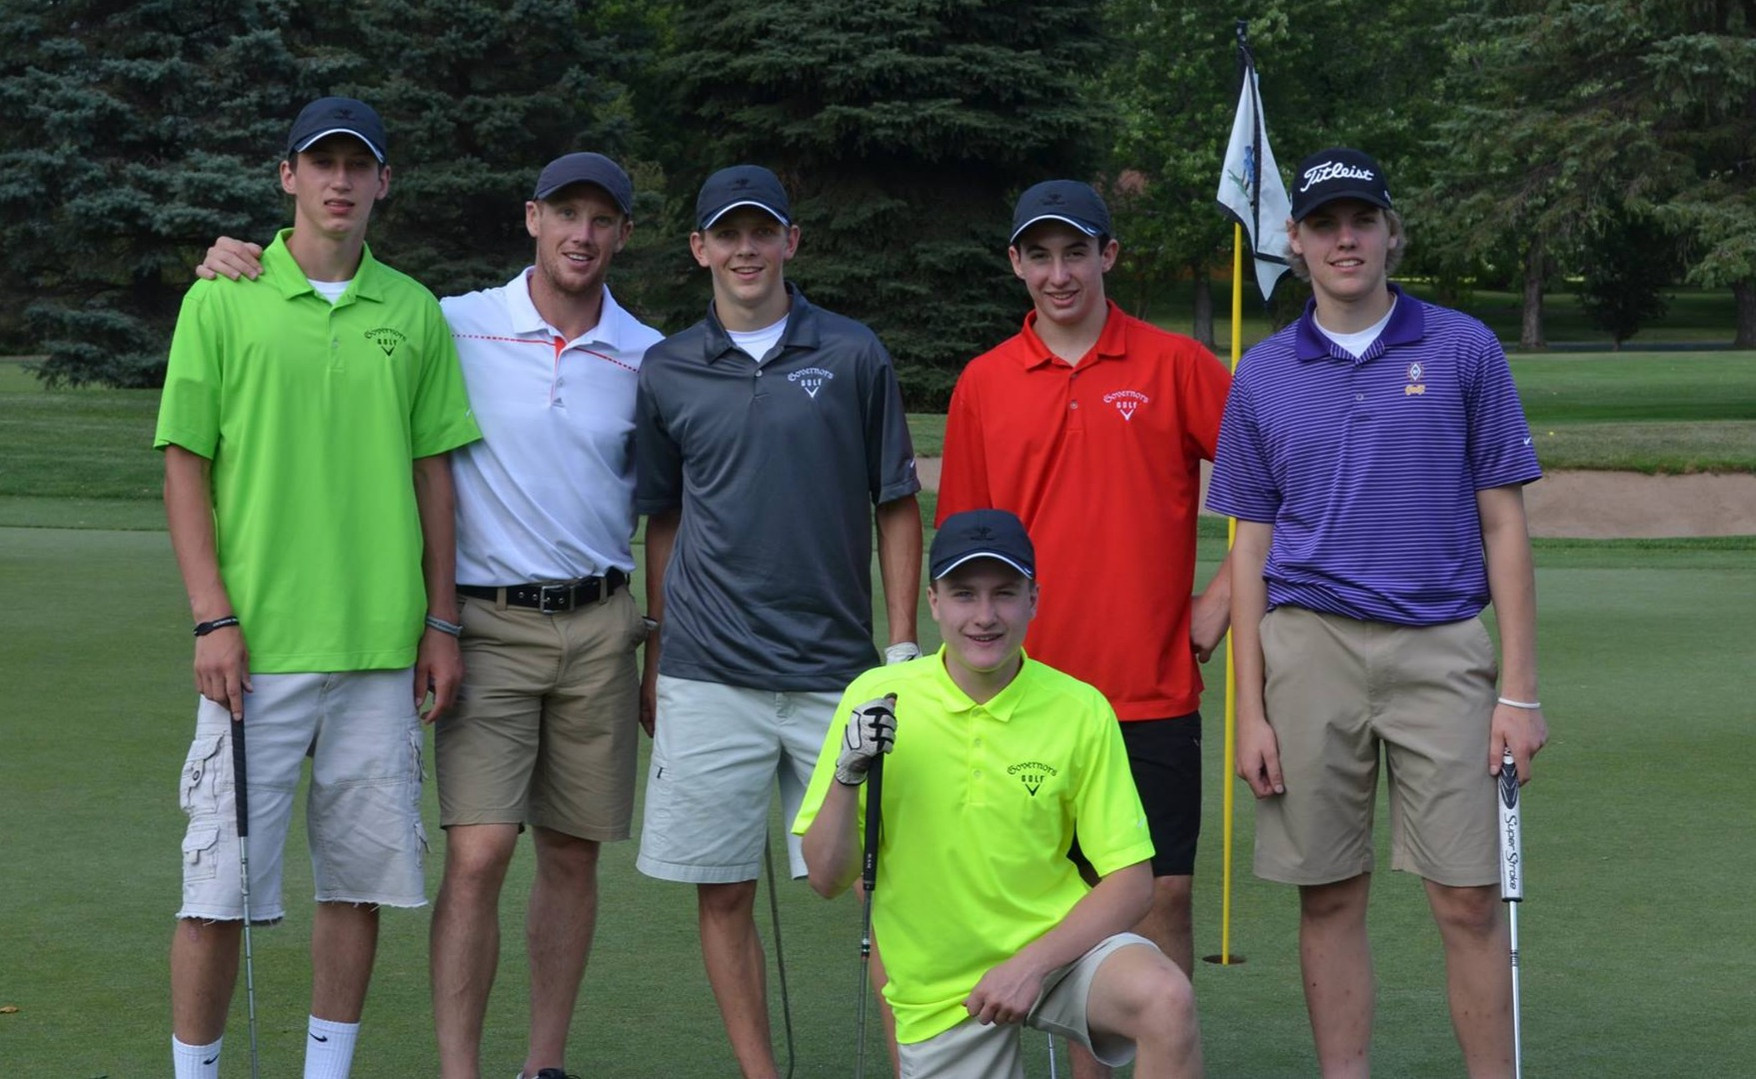 golf-tourney-group1.jpg